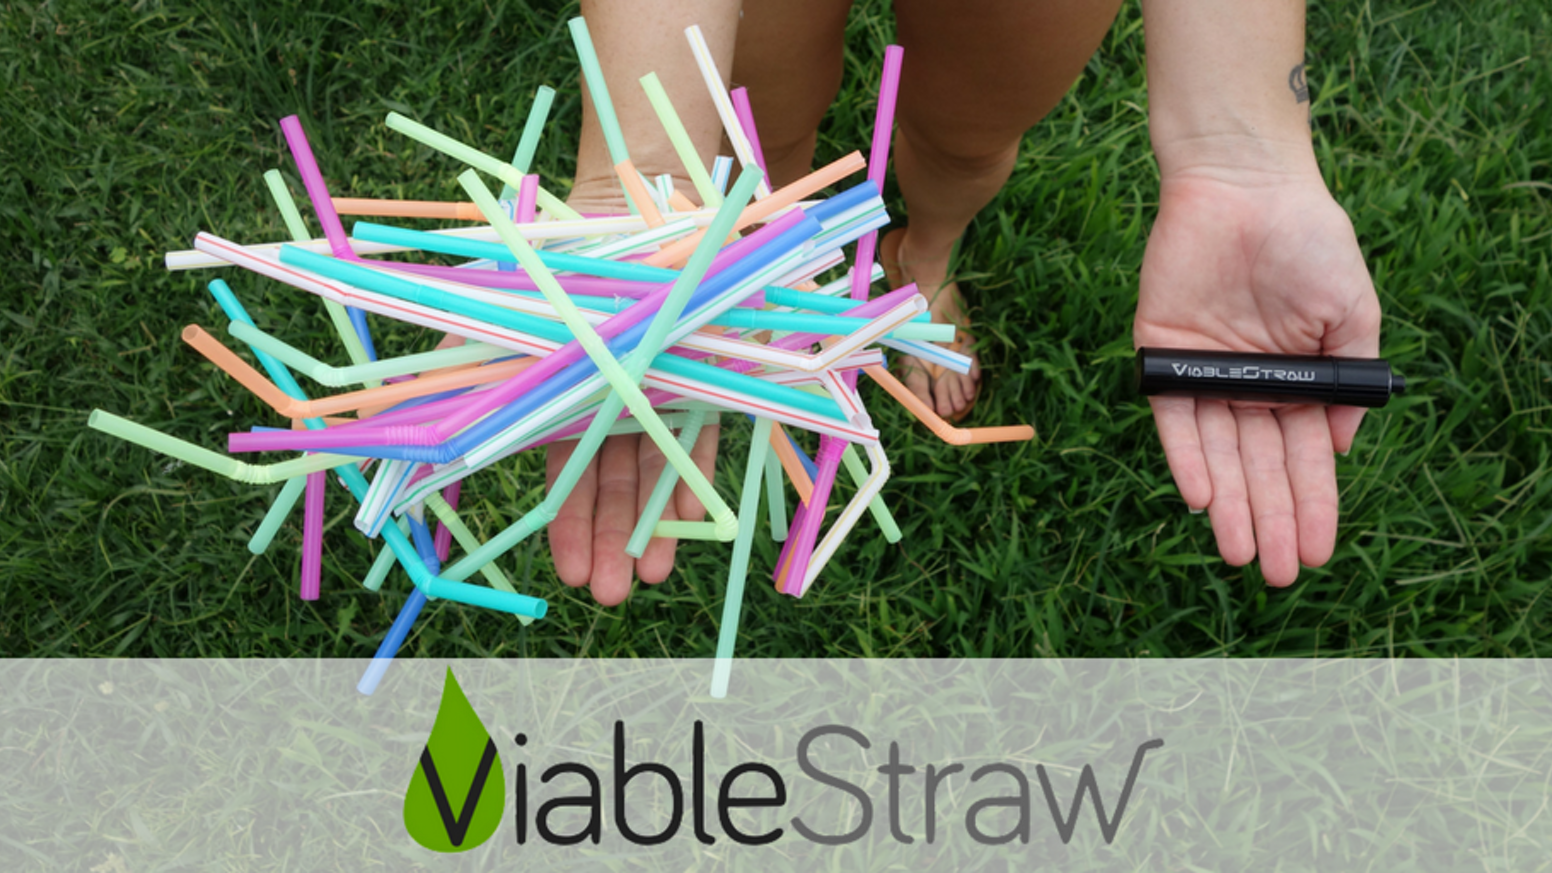 With the Patent-Pending telescopic design, ViableStraw goes from your keychain to fitting all of your favourite sized drinks with ease!